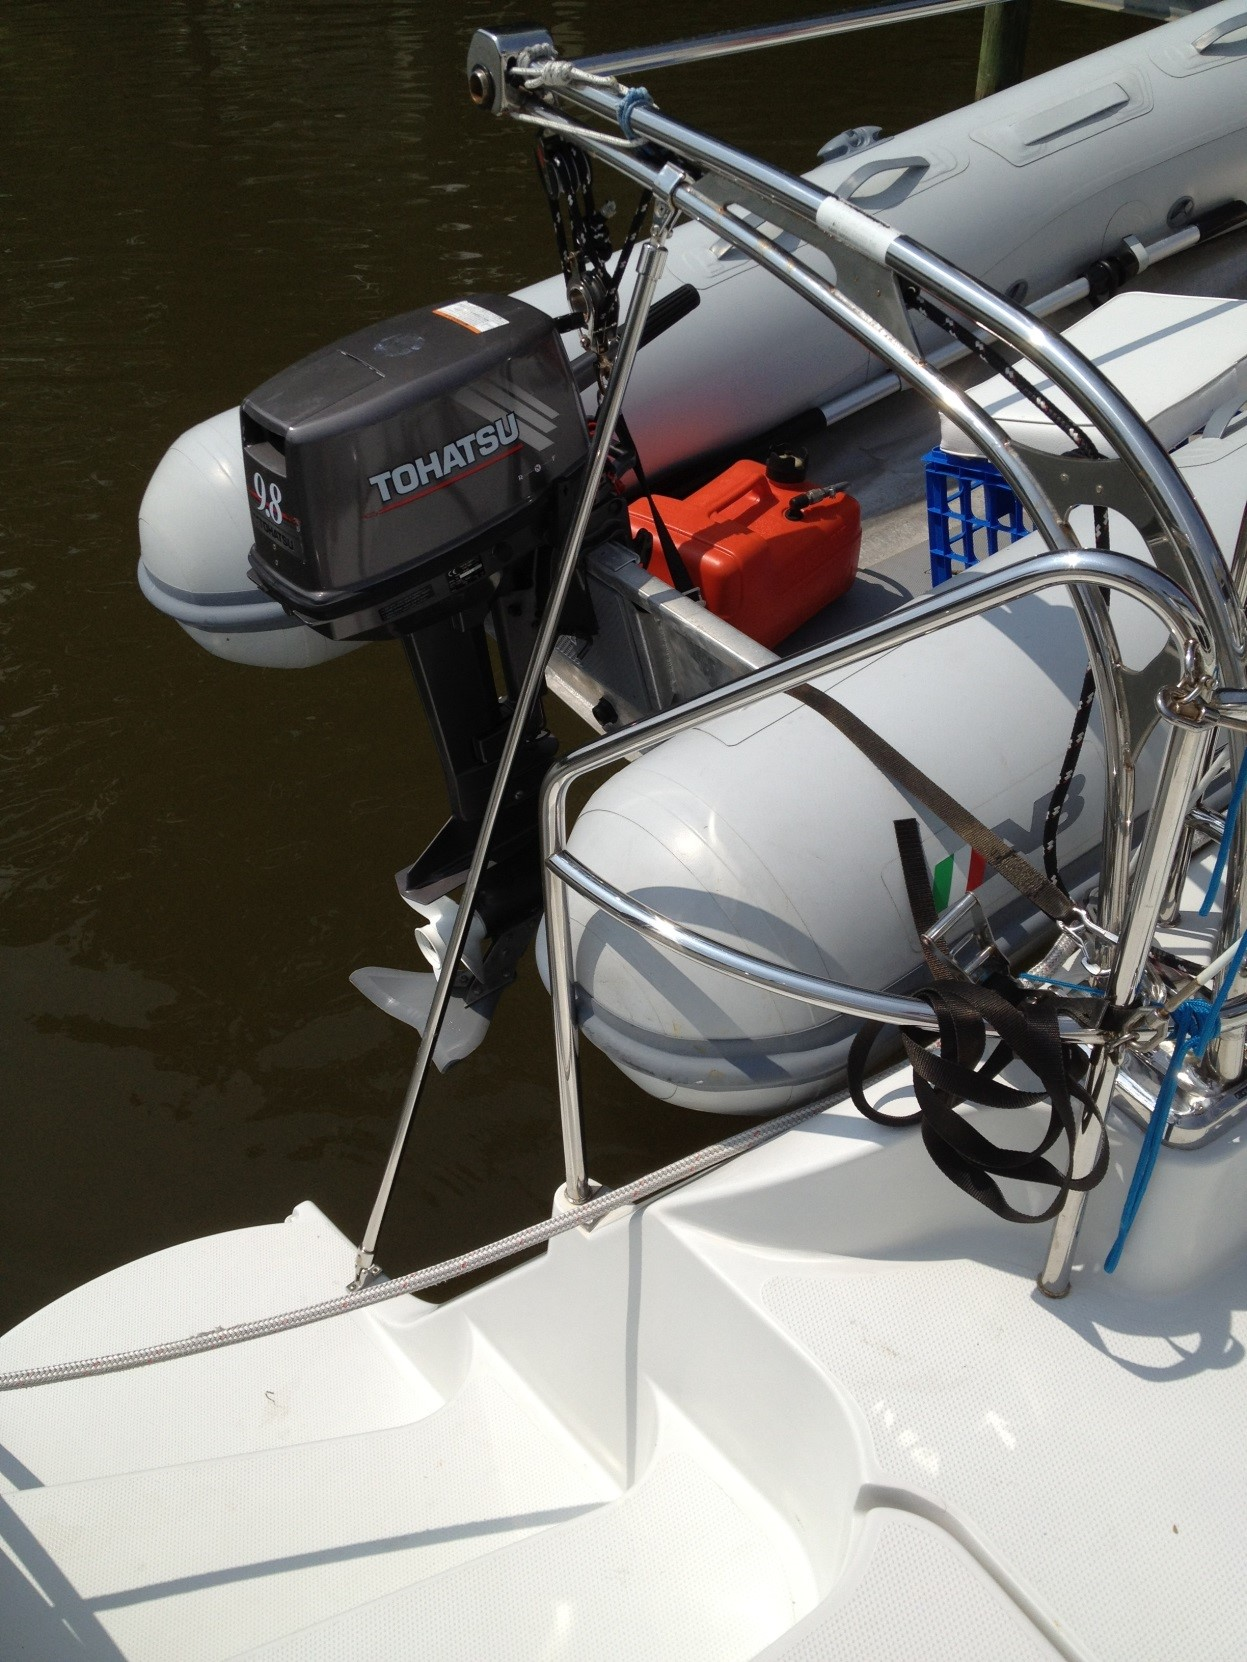 Added struts support a greater weight than the original Edson design. Note the blocks and lines for easier dinghy handling. Such davits are so easy to use and are one big advantage of a power catamaran.